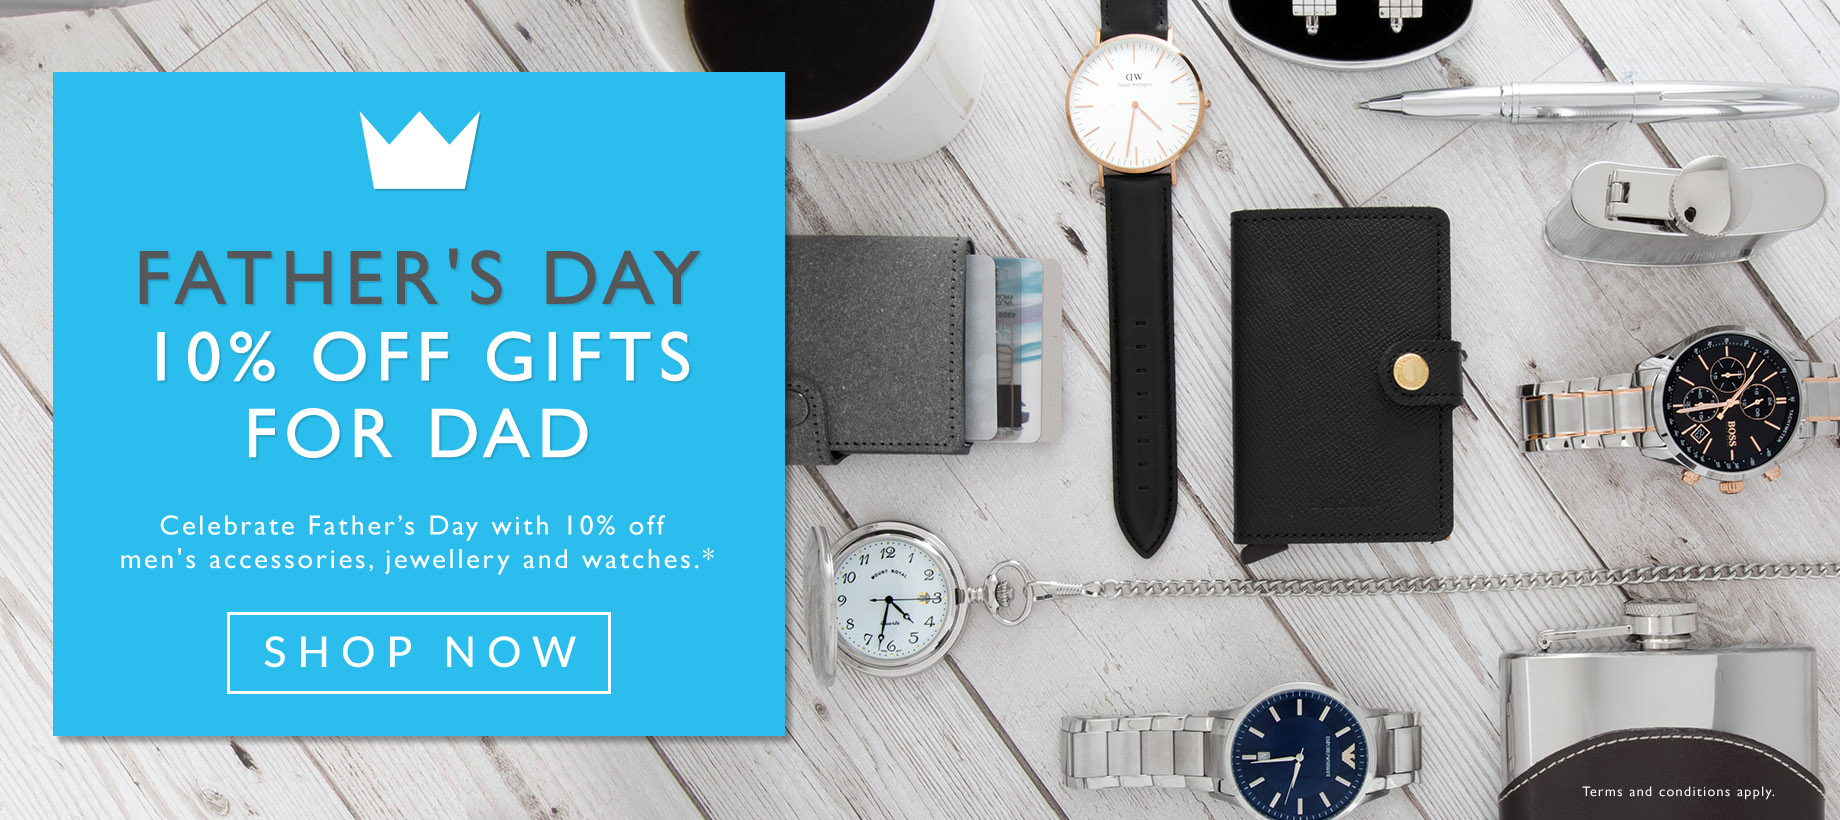 Fields: 10% off men's accessories, jewellery and watches